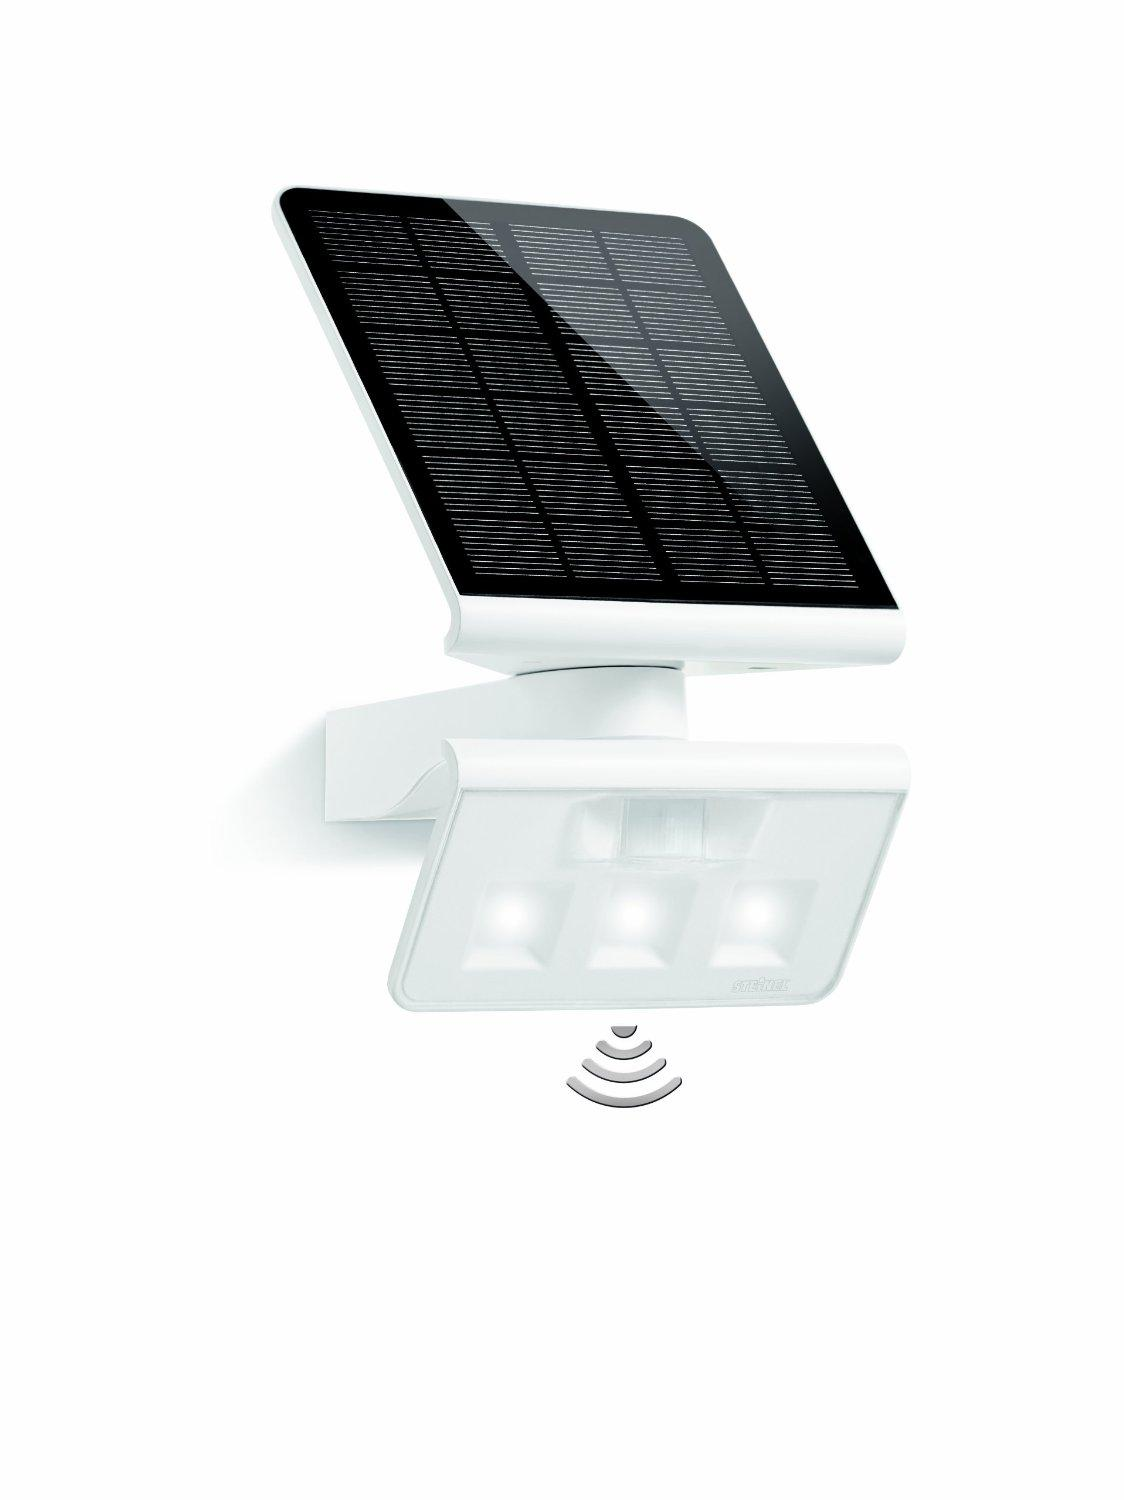 steinel xsolar l s blanc lampe solaire led avec 140 d tecteur de mouvement applique solaire. Black Bedroom Furniture Sets. Home Design Ideas